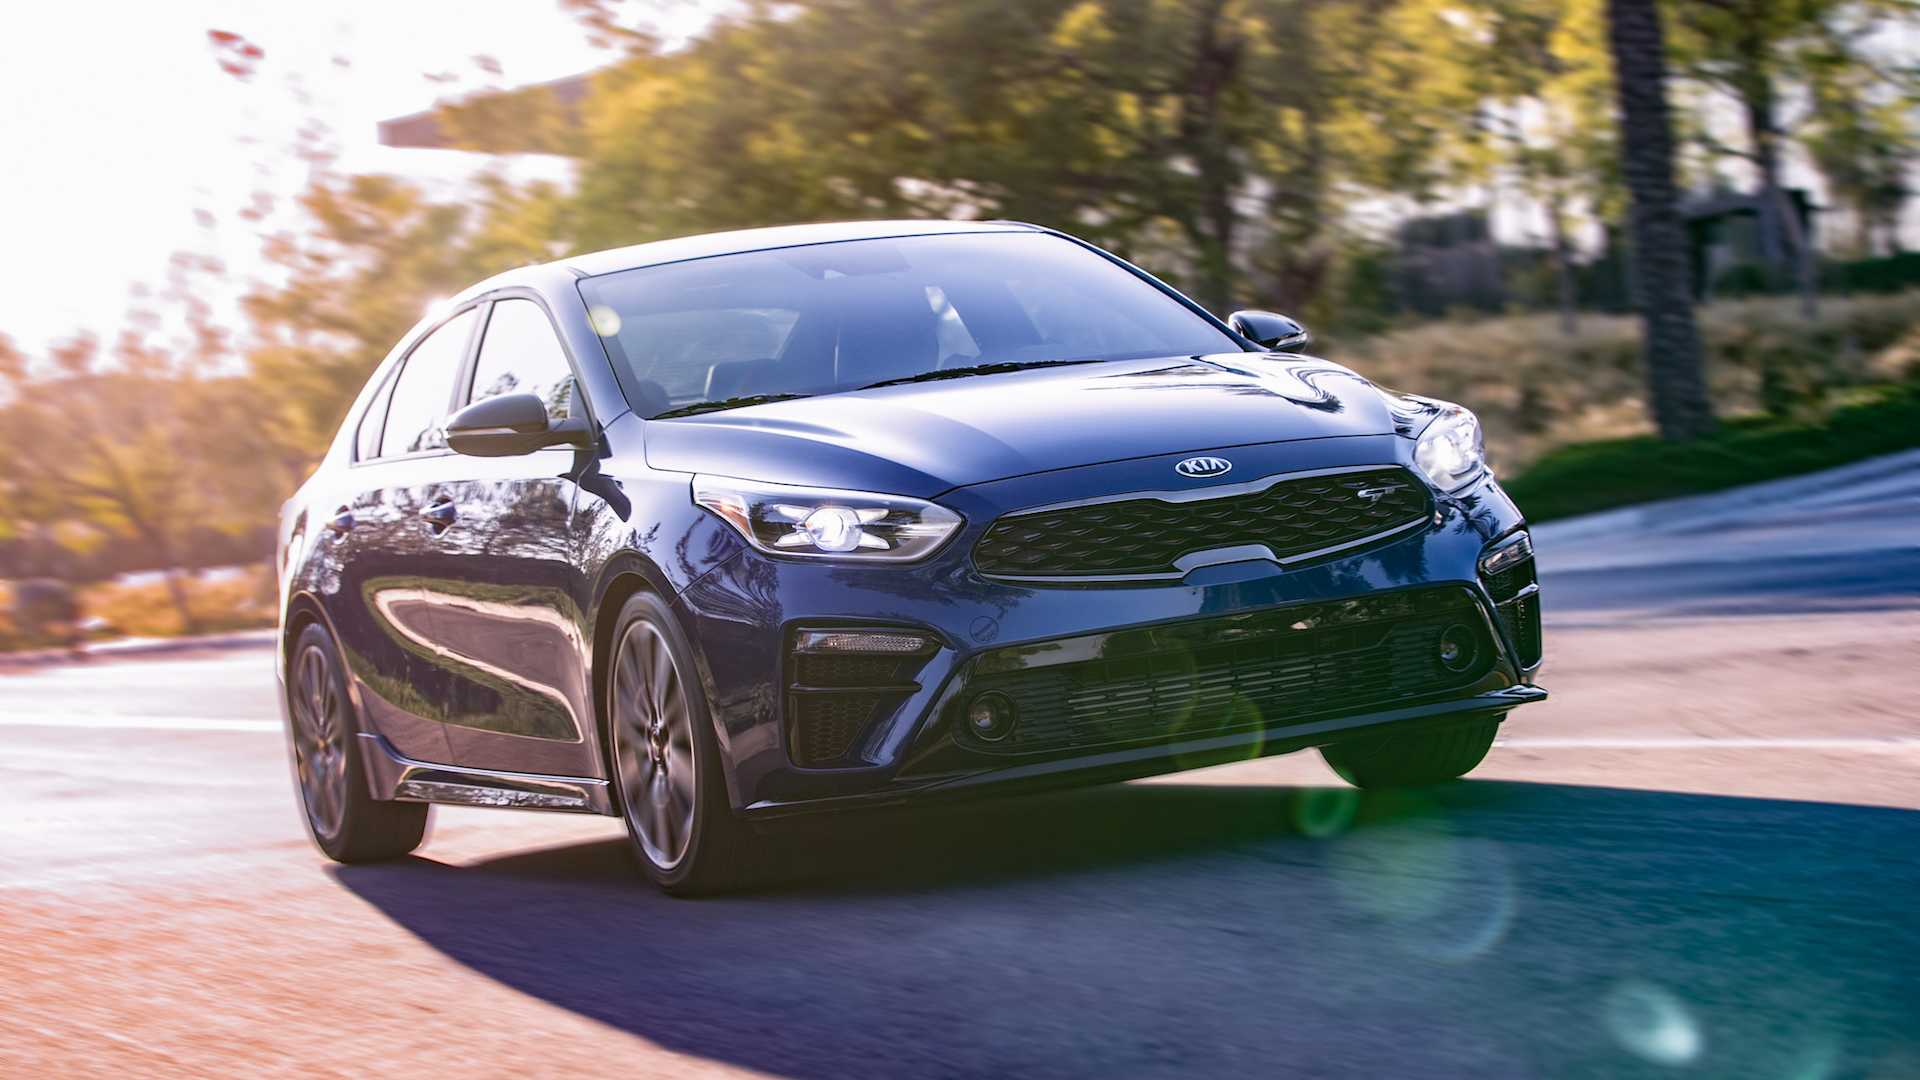 88 The Best Kia Forte Koup 2020 Price Design And Review